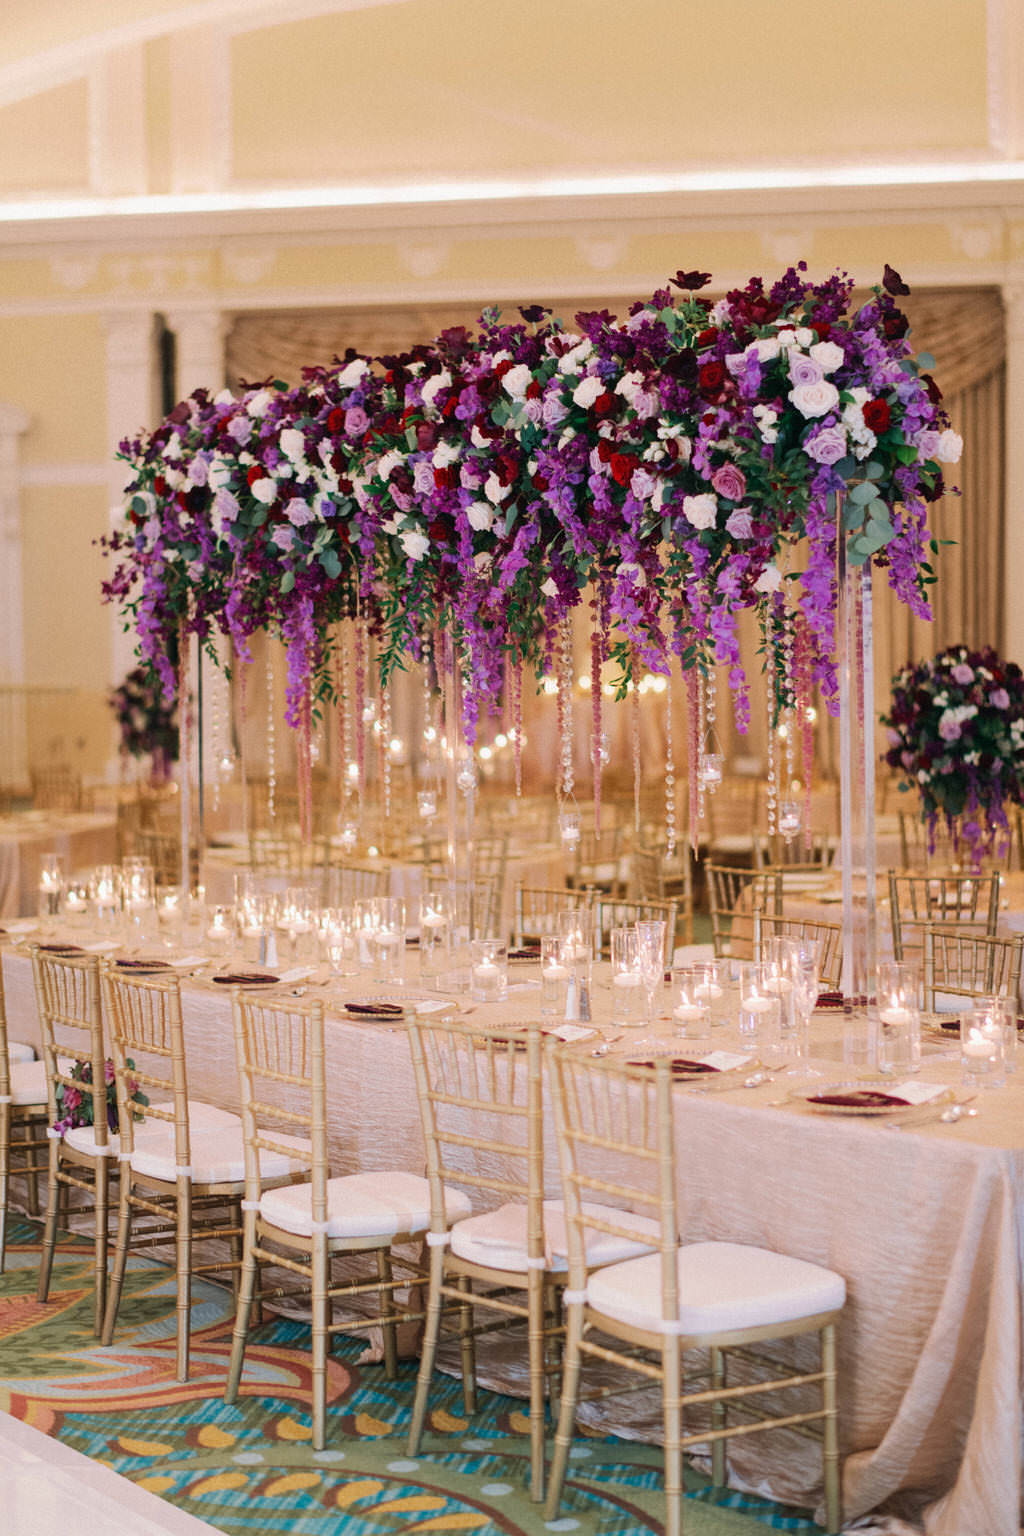 Elegant, Extravagant Wedding Reception Decor Portrait, Long Table with Gold Linen, Gold Chiavari Chairs, Tall Purple, Plum, Lilac, Red Greenery and Purple Hanging Amaranthus Floral Centerpiece | Downtown St. Pete Hotel Ballroom Wedding Venue The Vinoy Renaissance